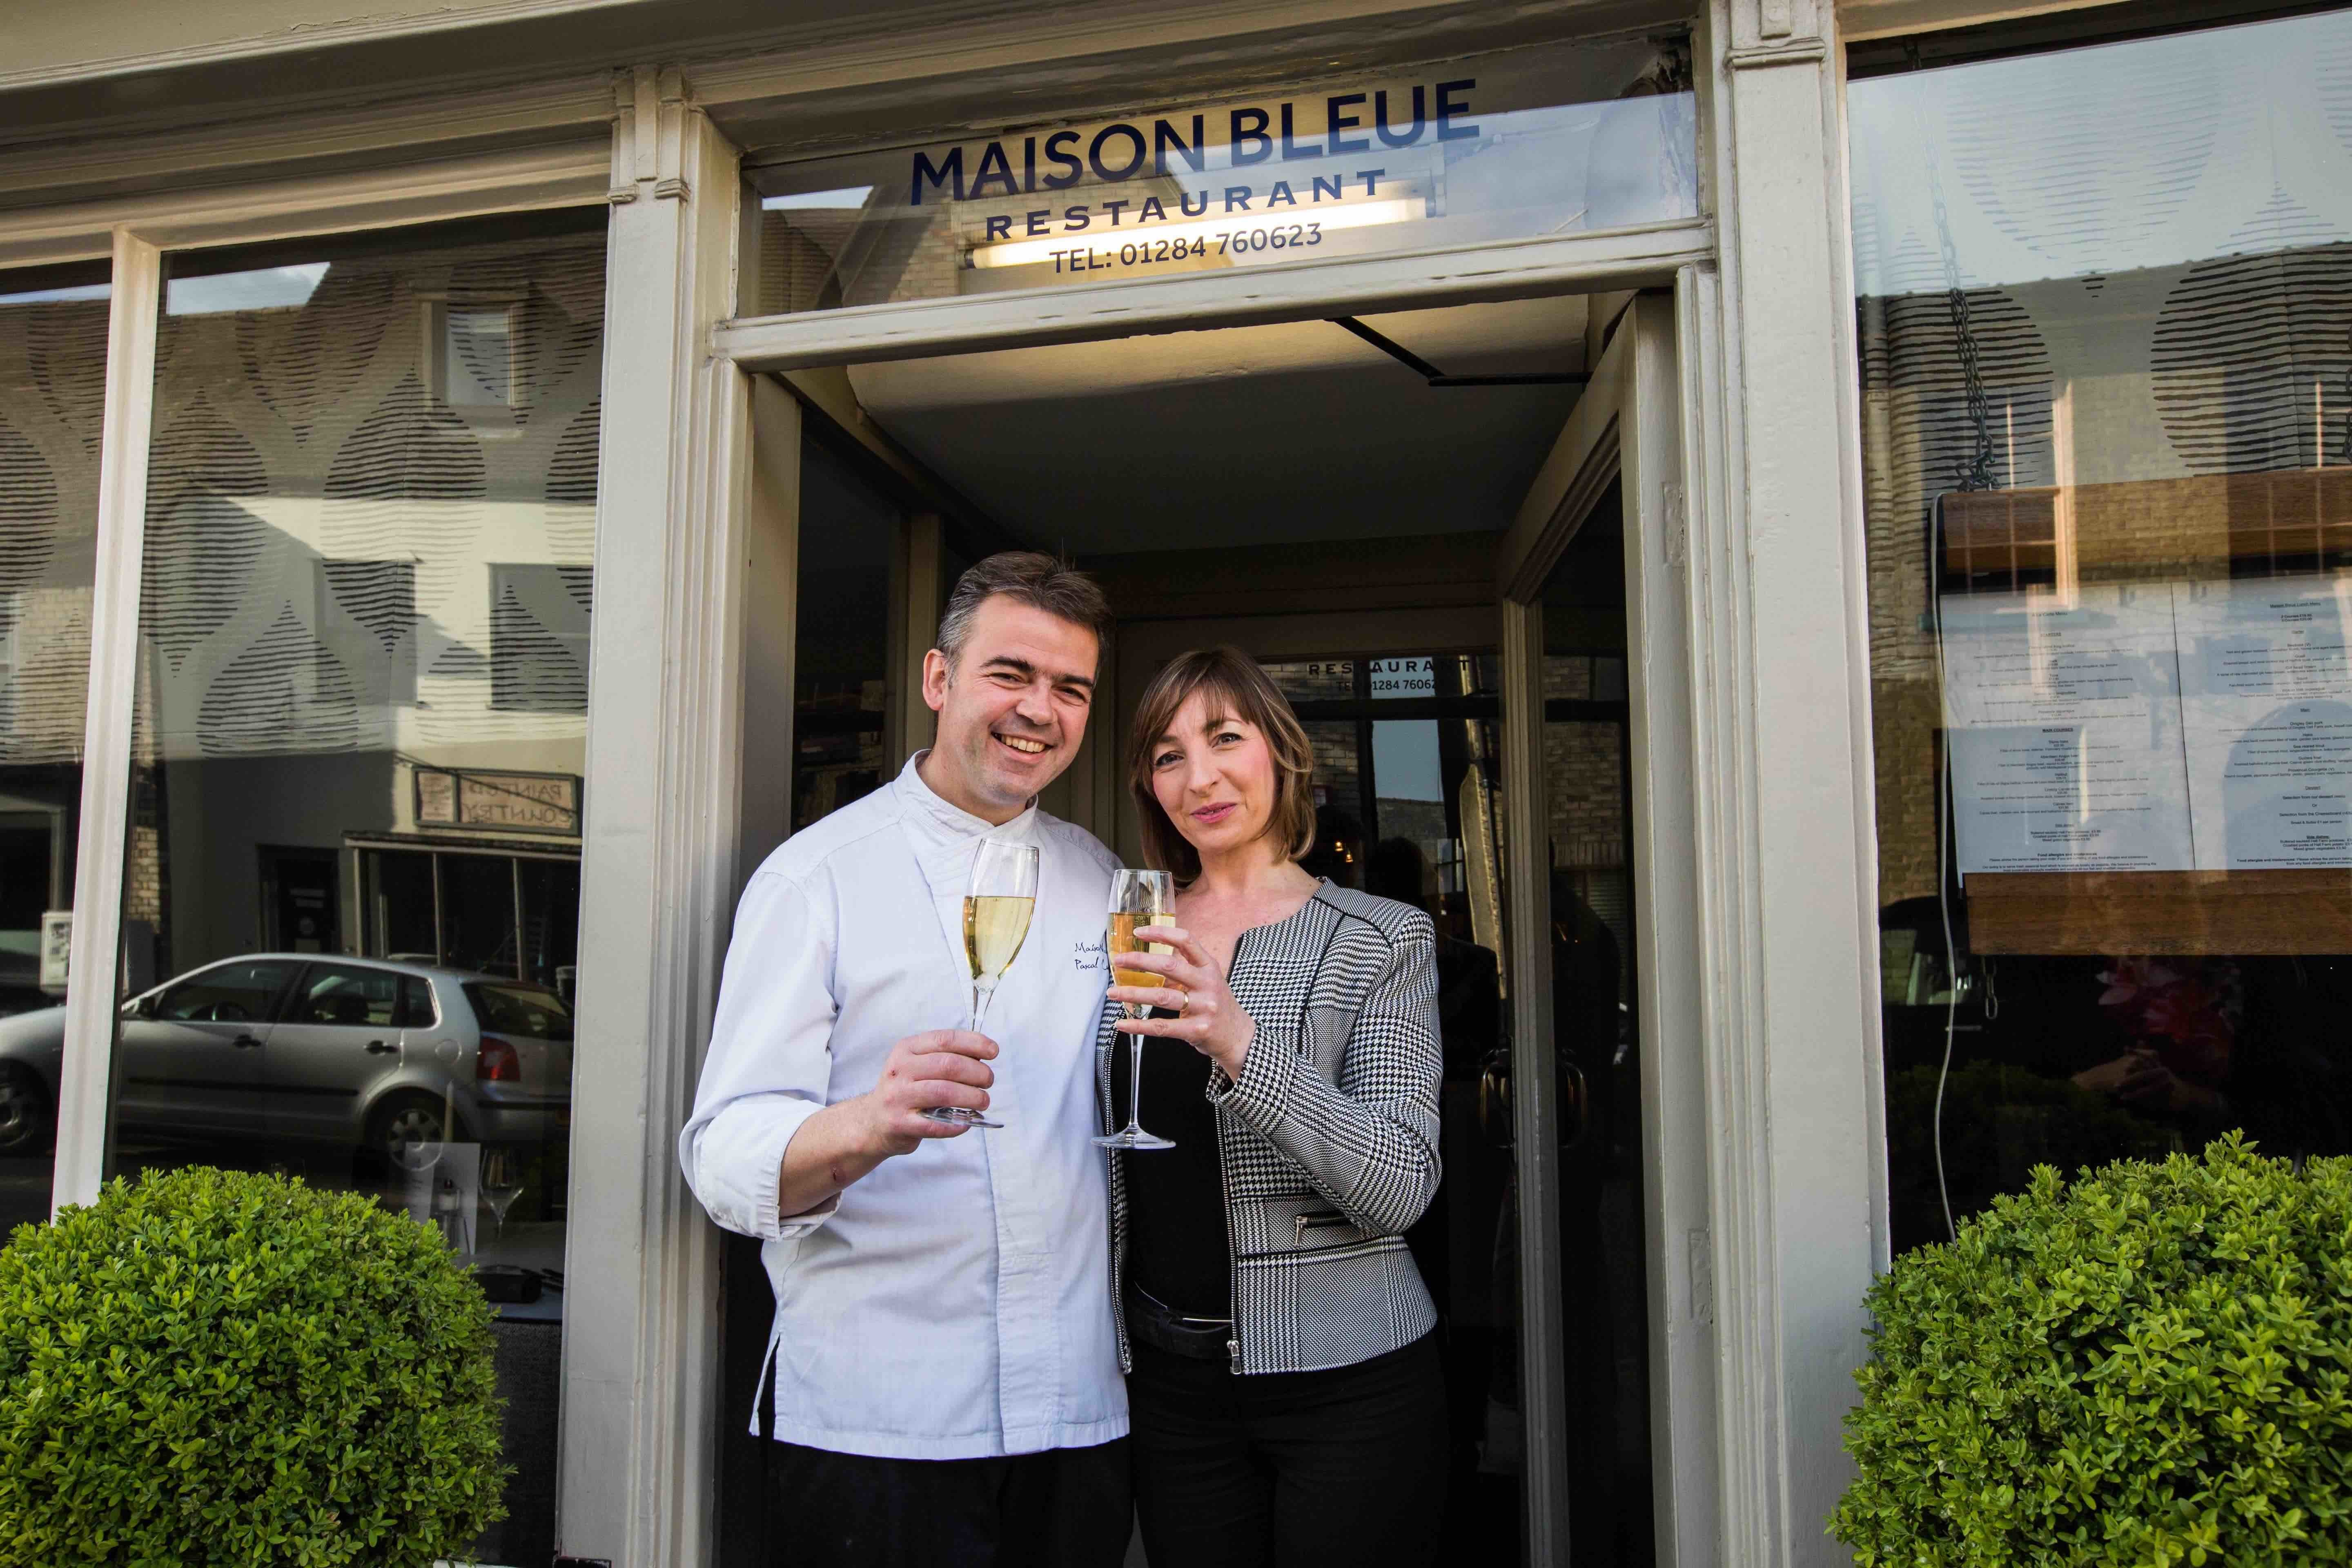 Maison Bleue Wins 2019 TripAdvisor Travellers' Choice Award